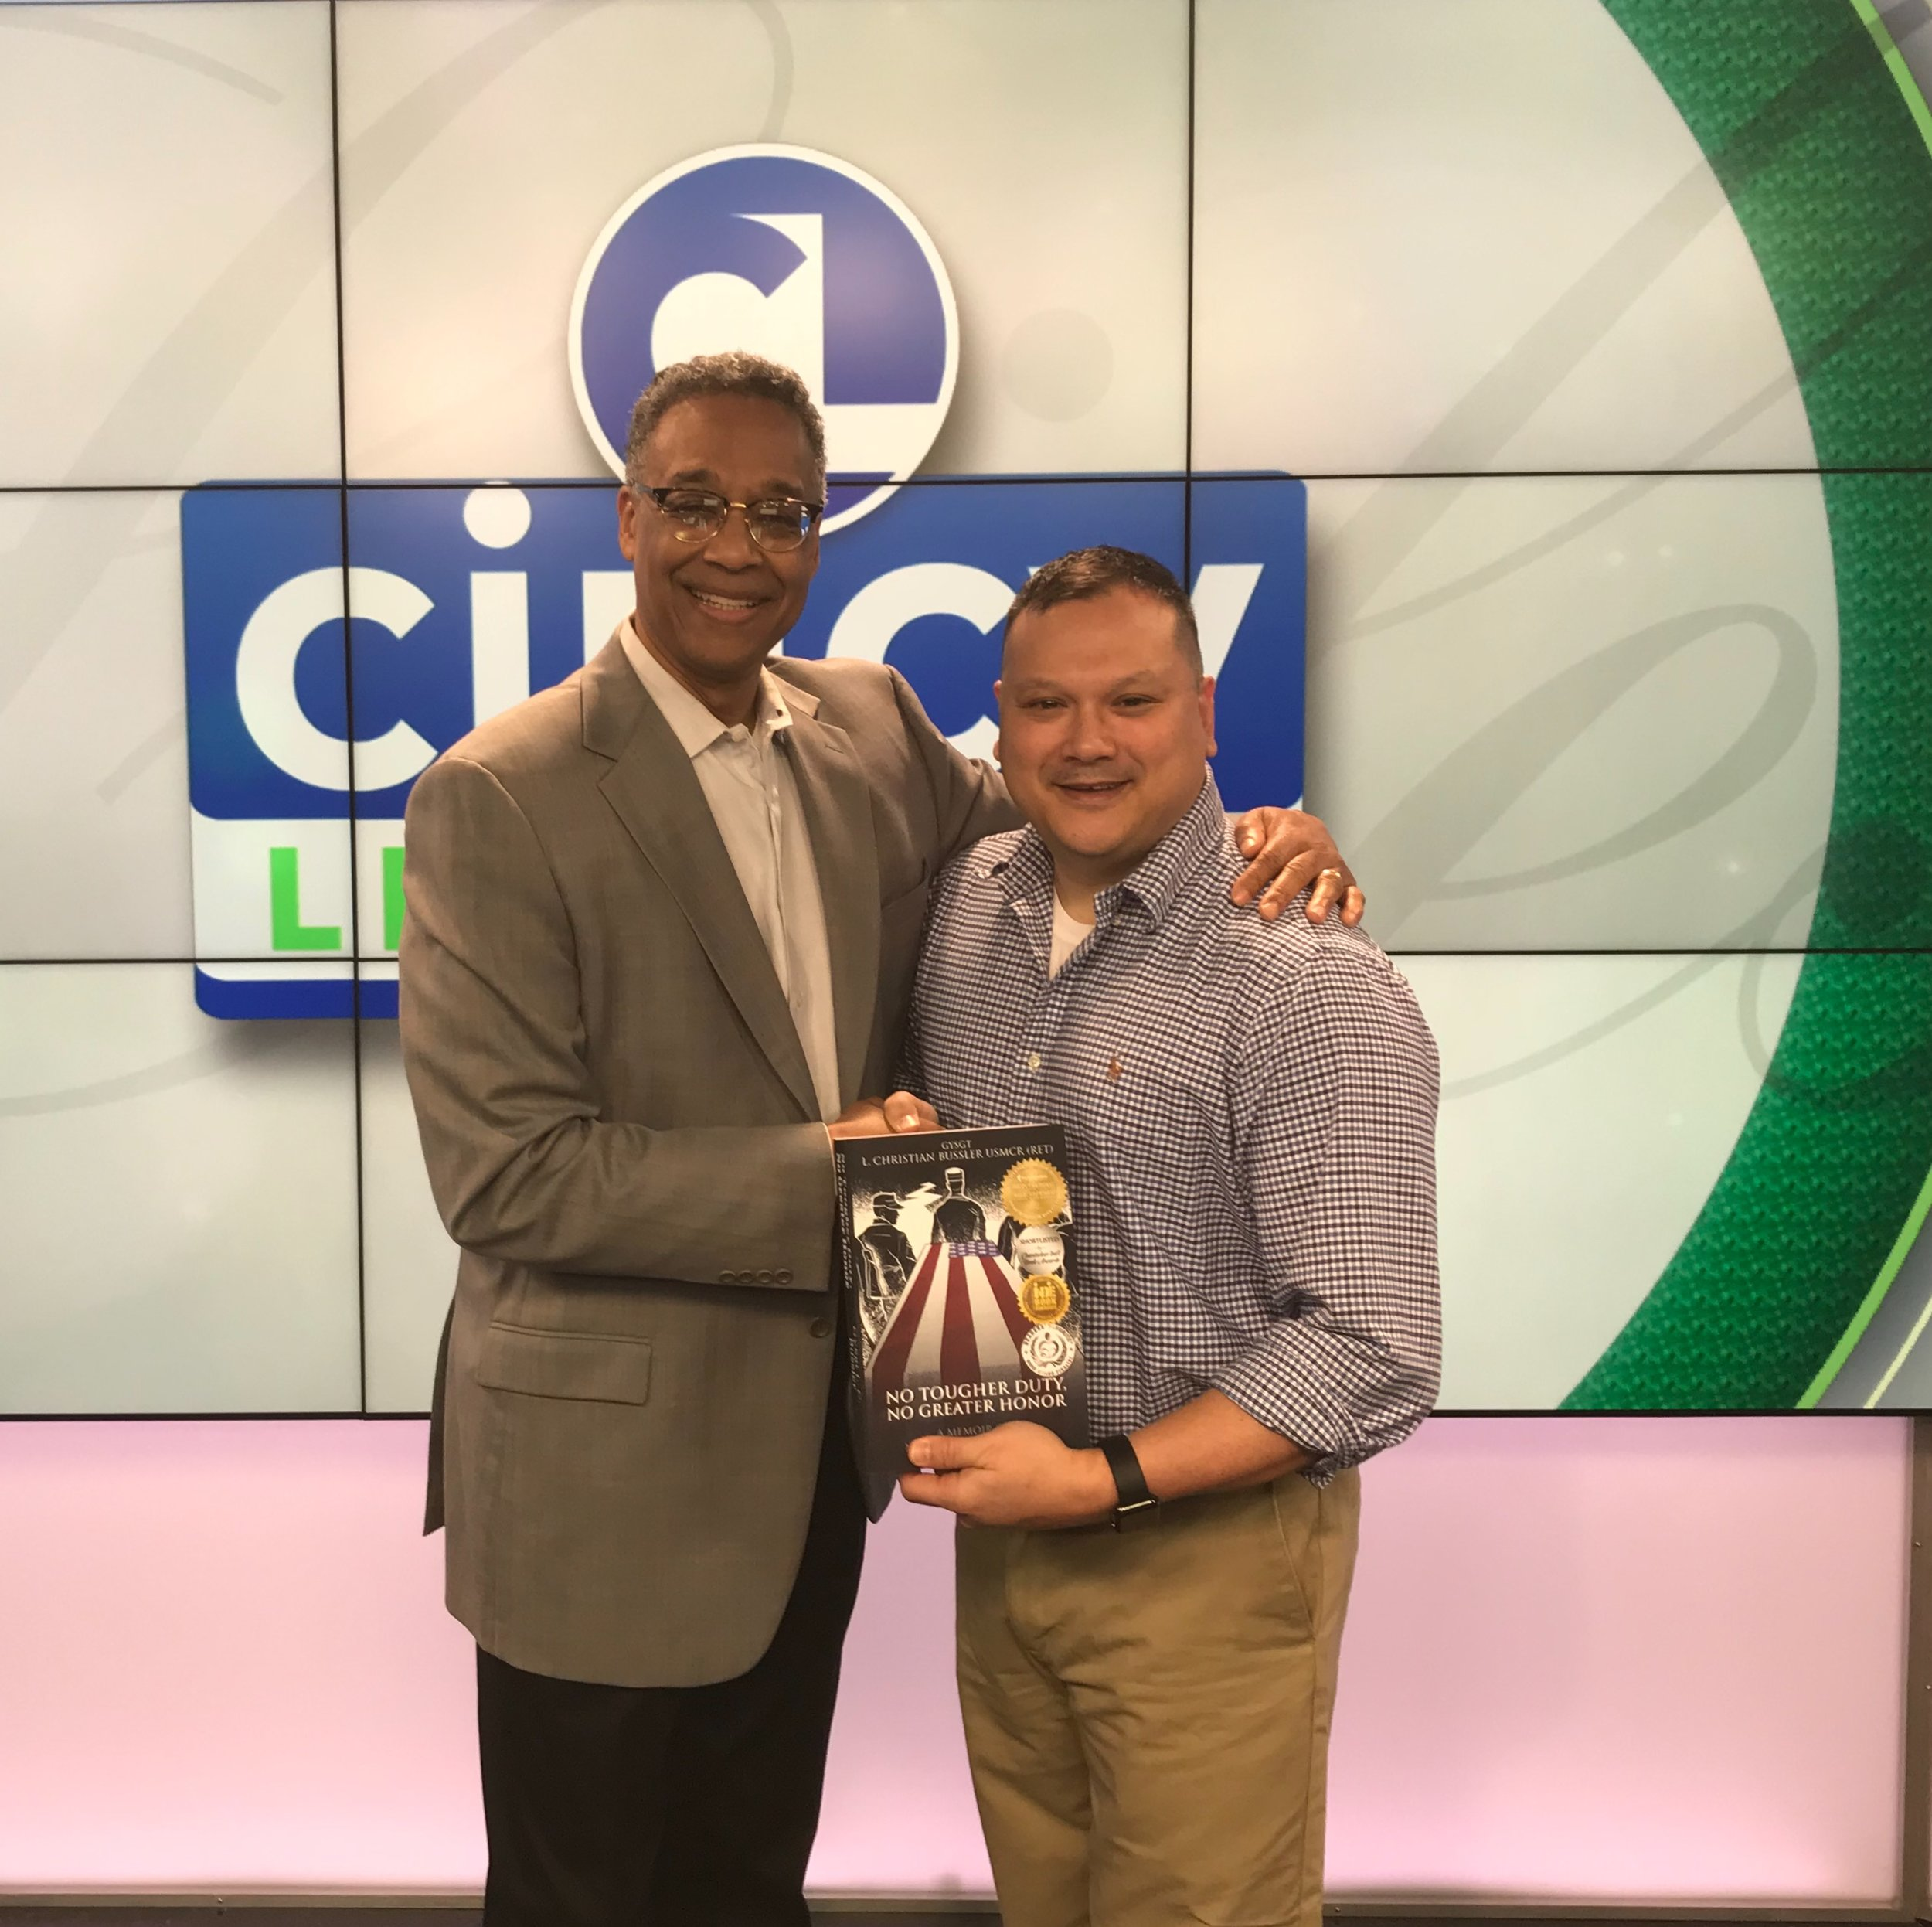 Clyde Gray from Cincinatti WCPO 9 News, SUPER-GREAT GUY!!